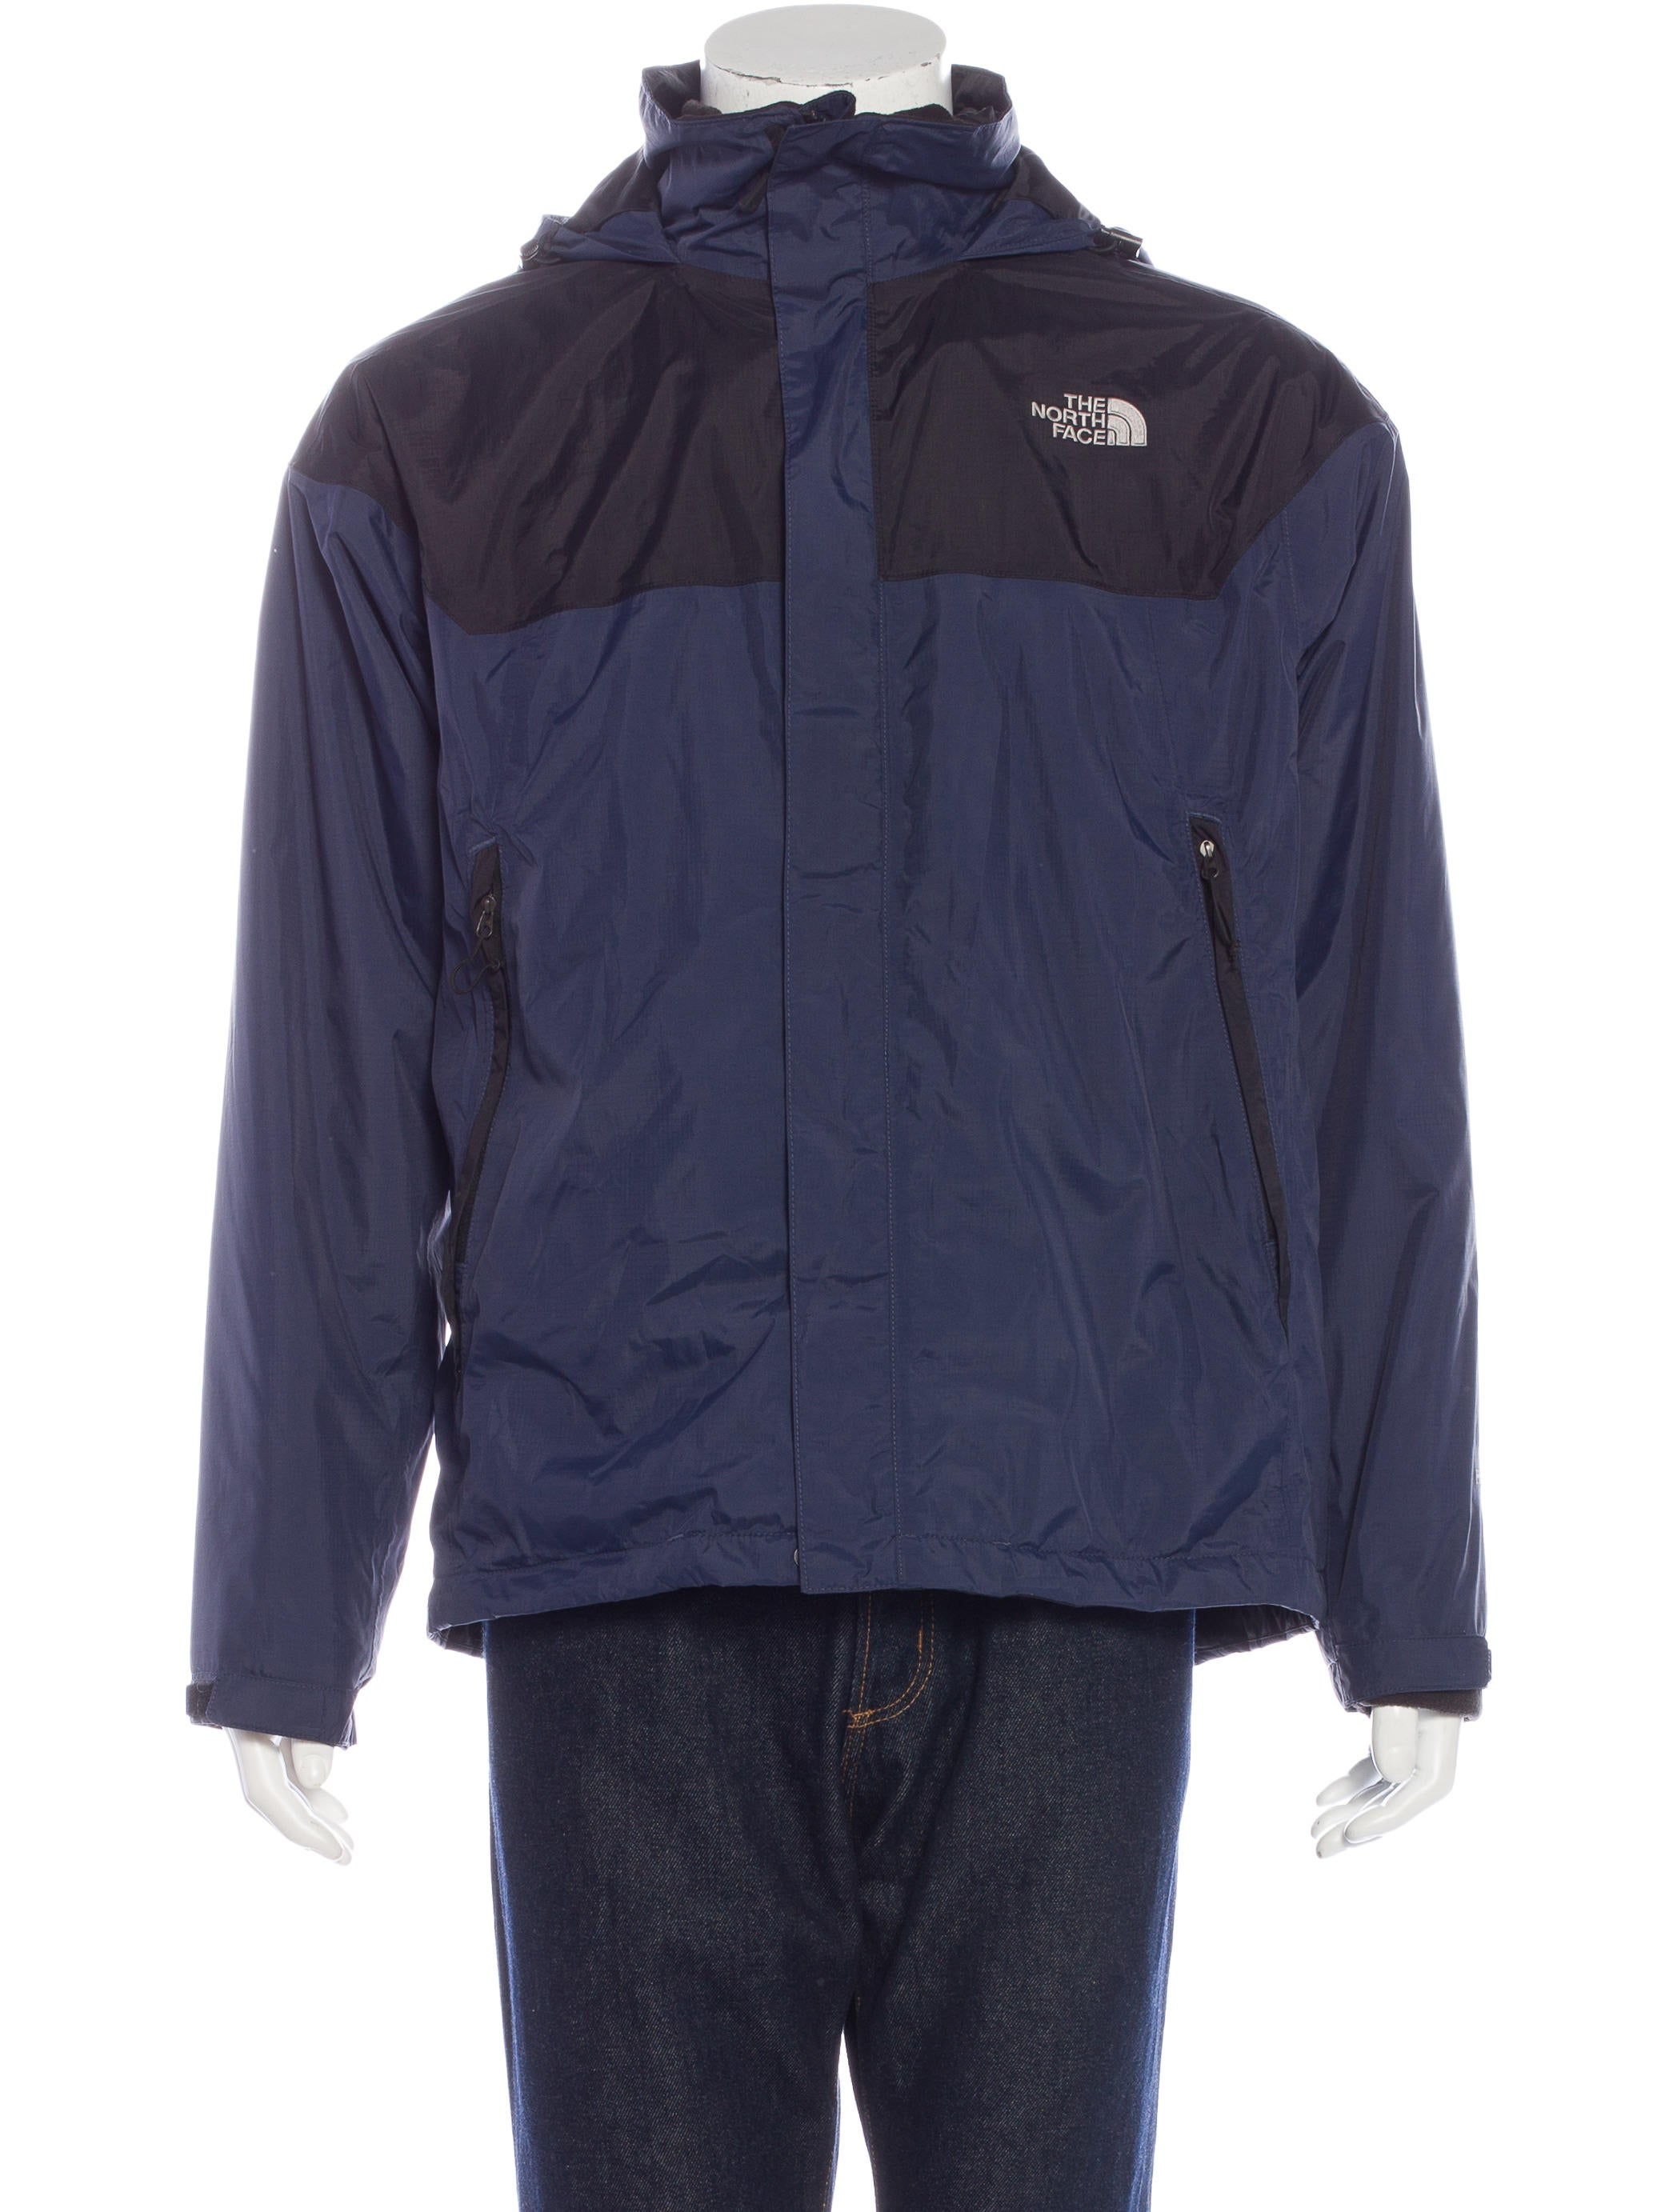 The Continental Nyc >> The North Face HyVent Layered Jacket - Clothing ...